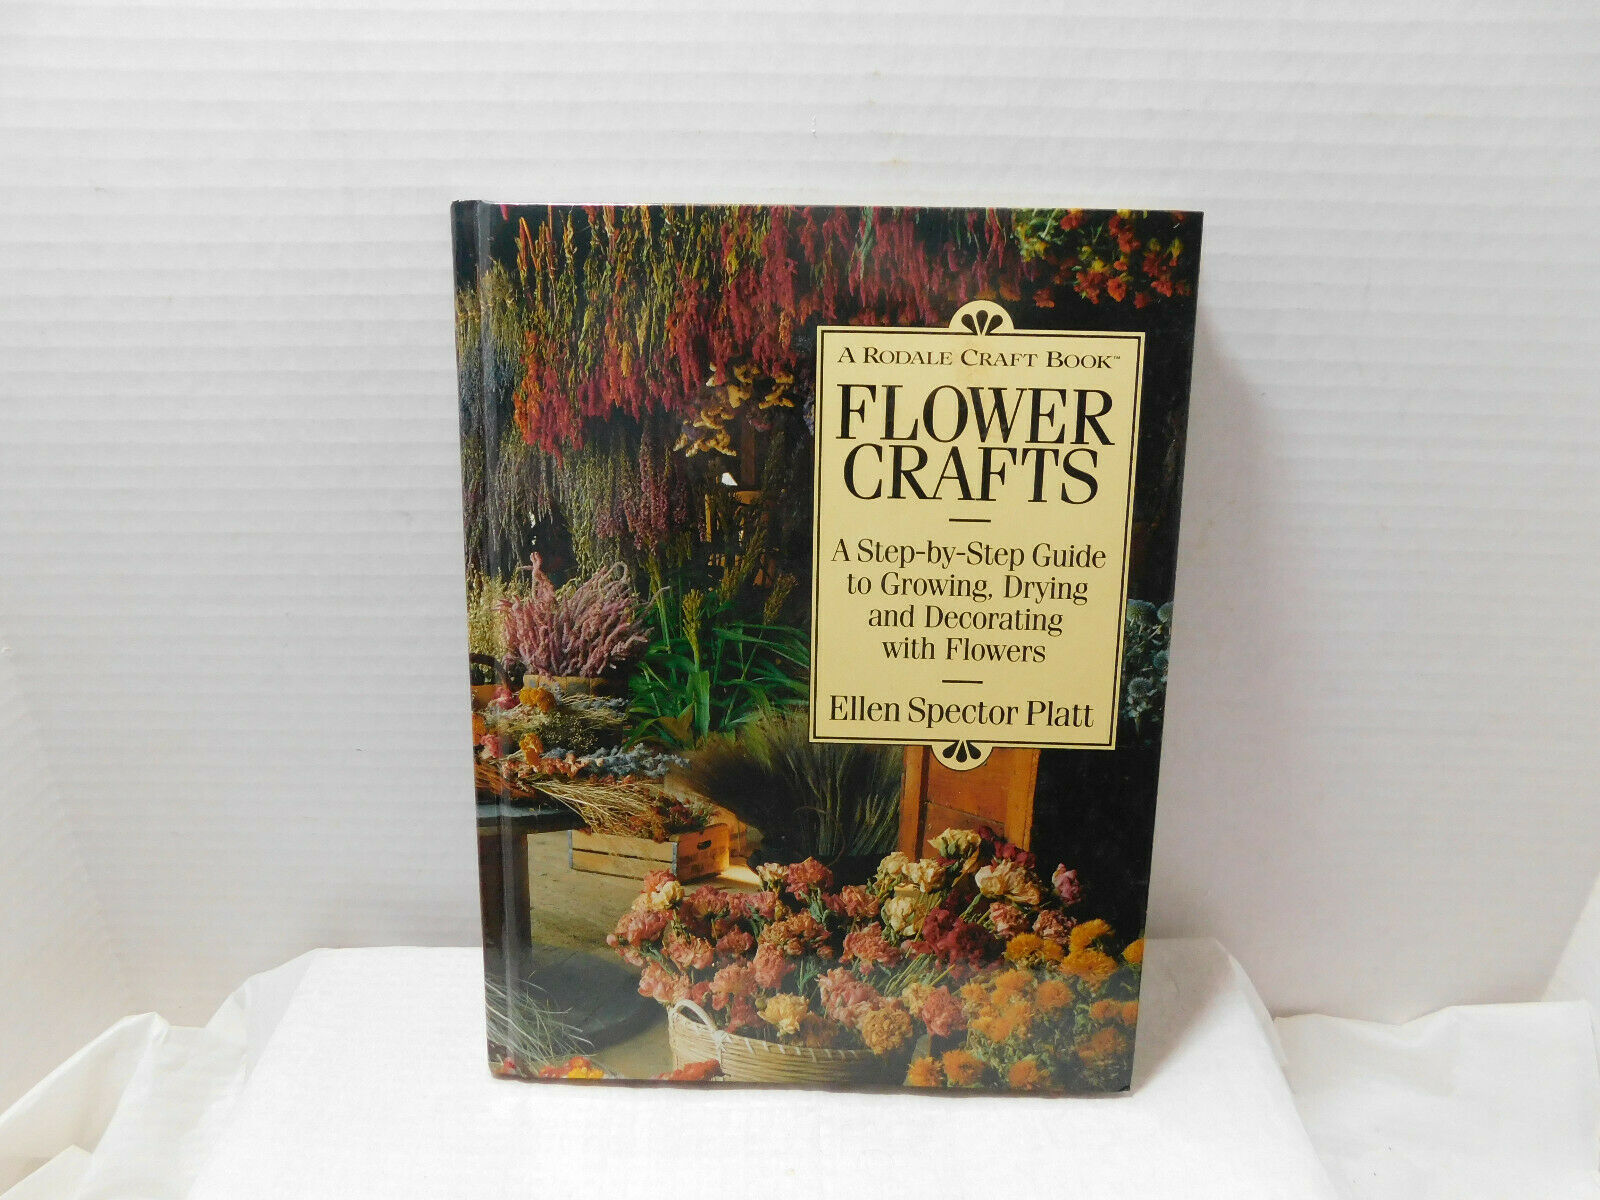 Primary image for The Rodale Craft Book Flower Crafts Platt